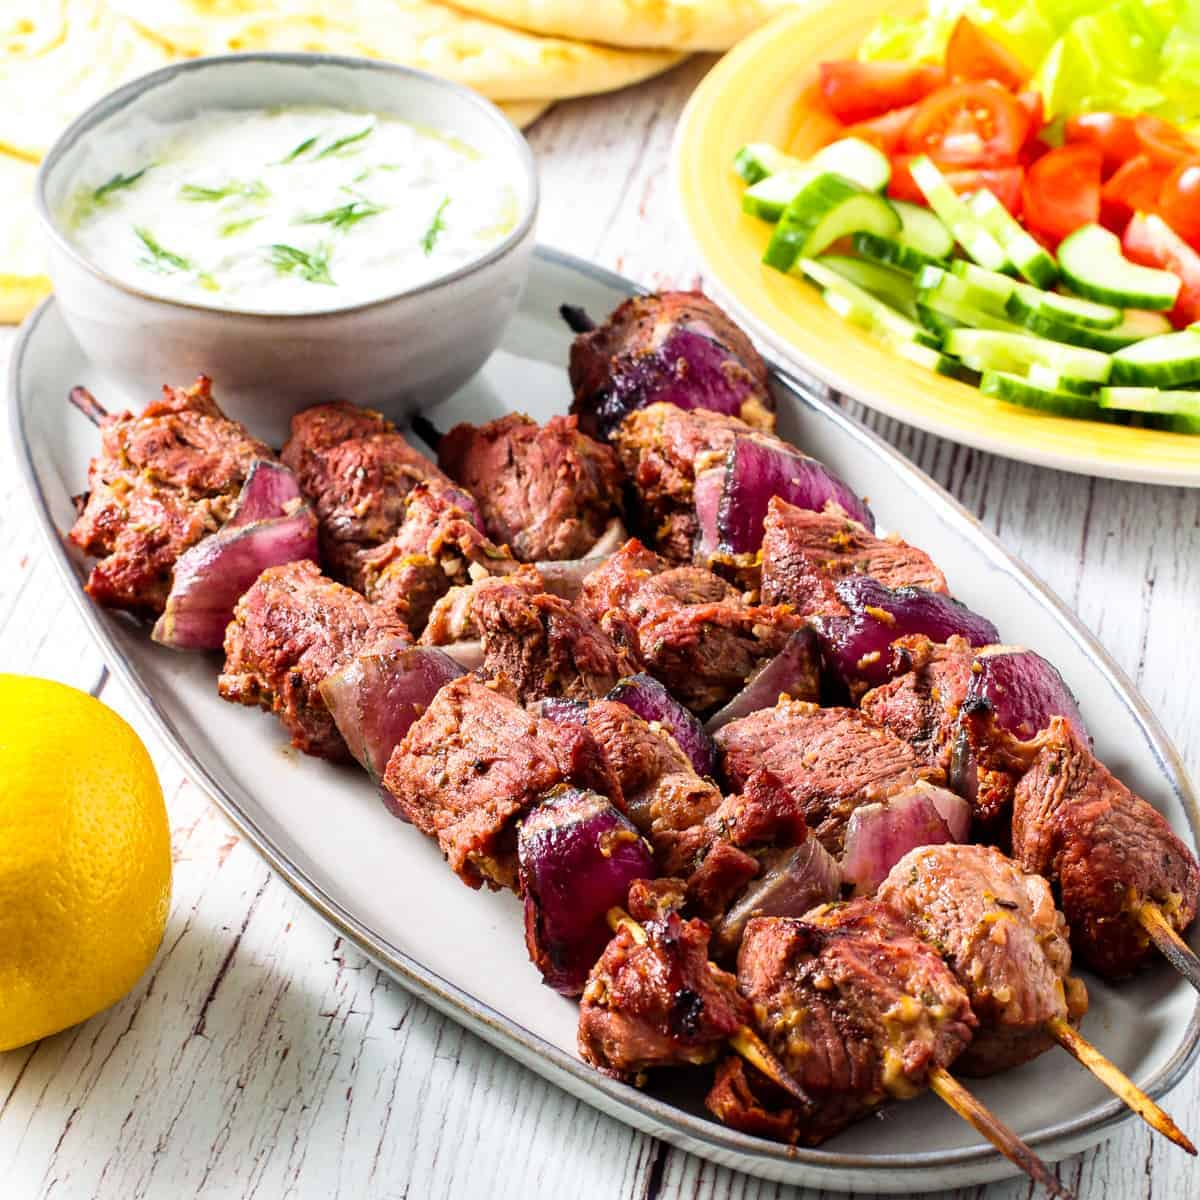 Greek yogurt marinated lamb kebabs shown served on a platter with a bowl of tzatziki sauce,warm pita bread, and a platter of fresh vegetables.